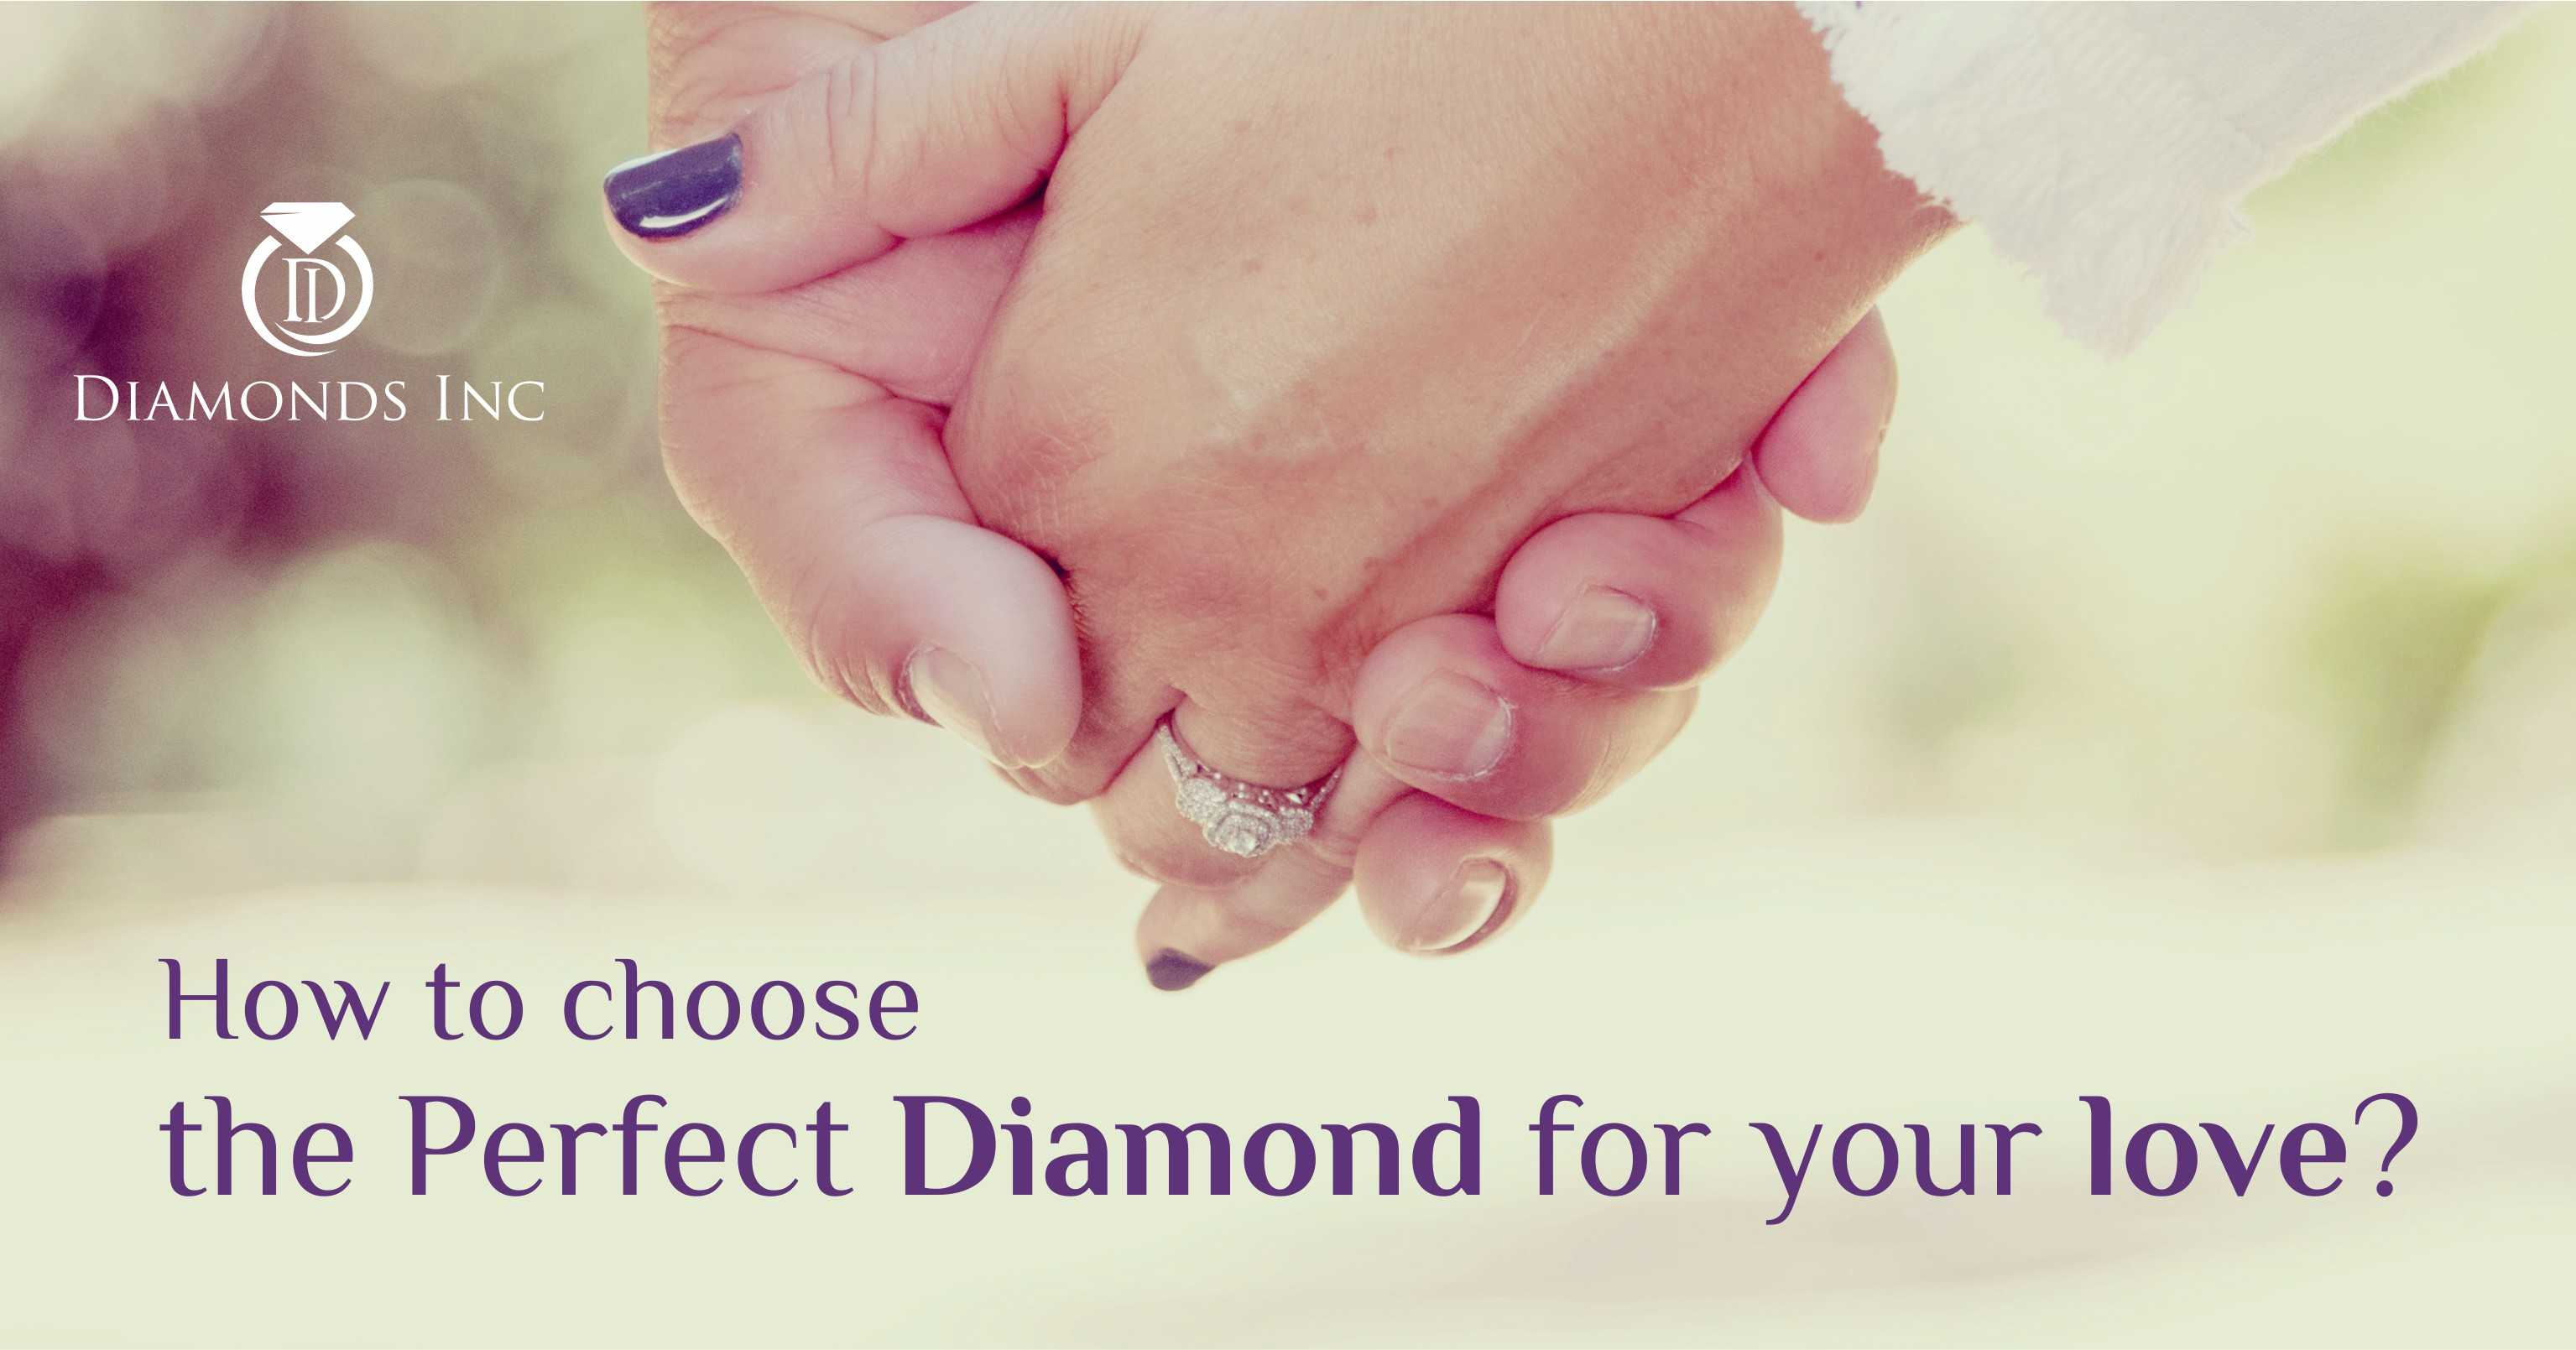 How To Choose The Perfect Diamond For Your Love?